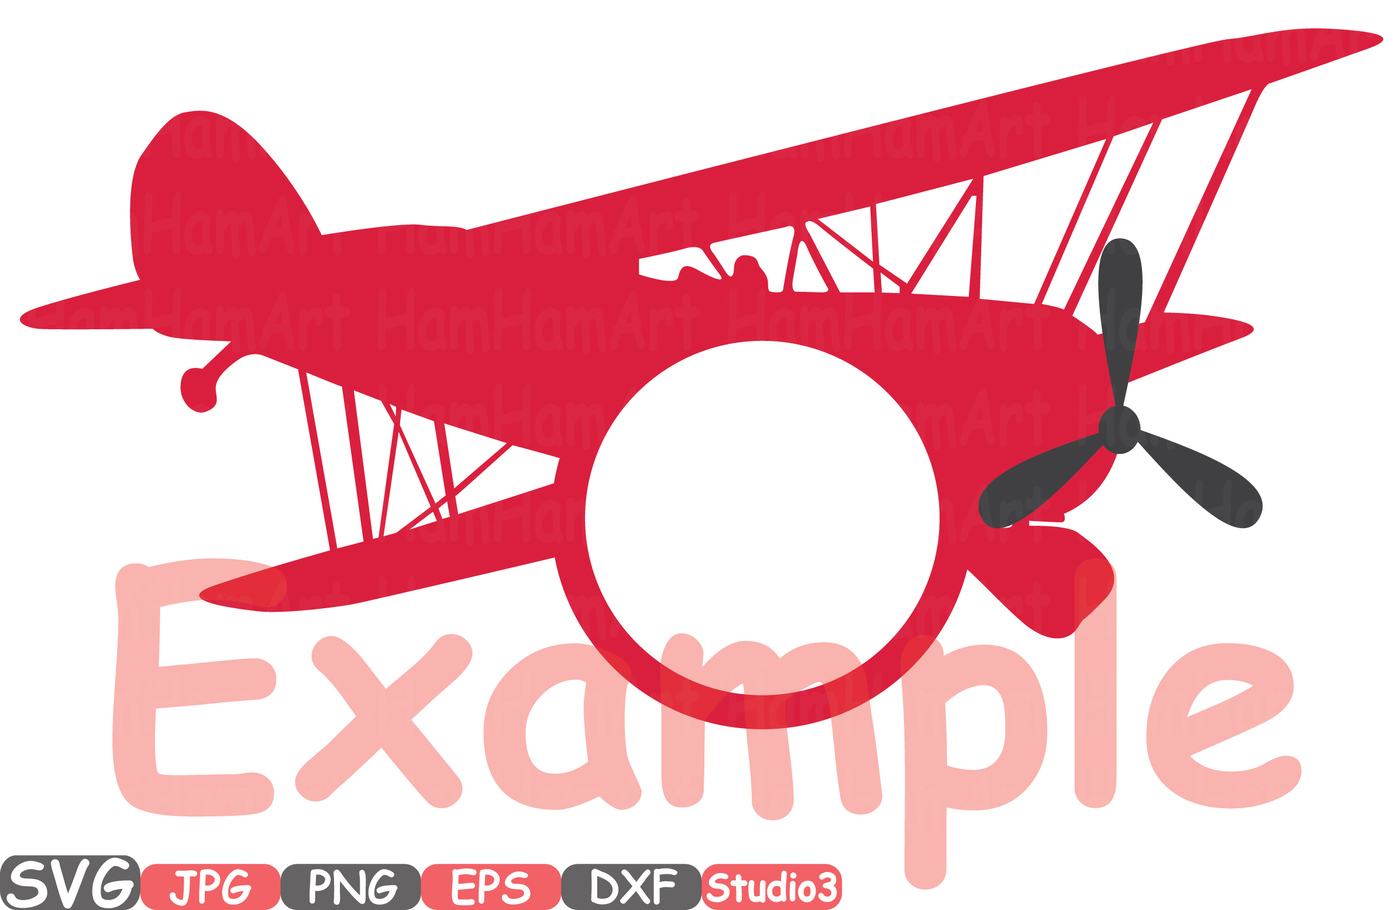 1400x910 Patriotic Planes Silhouette Cutting Files Airplane Monogram